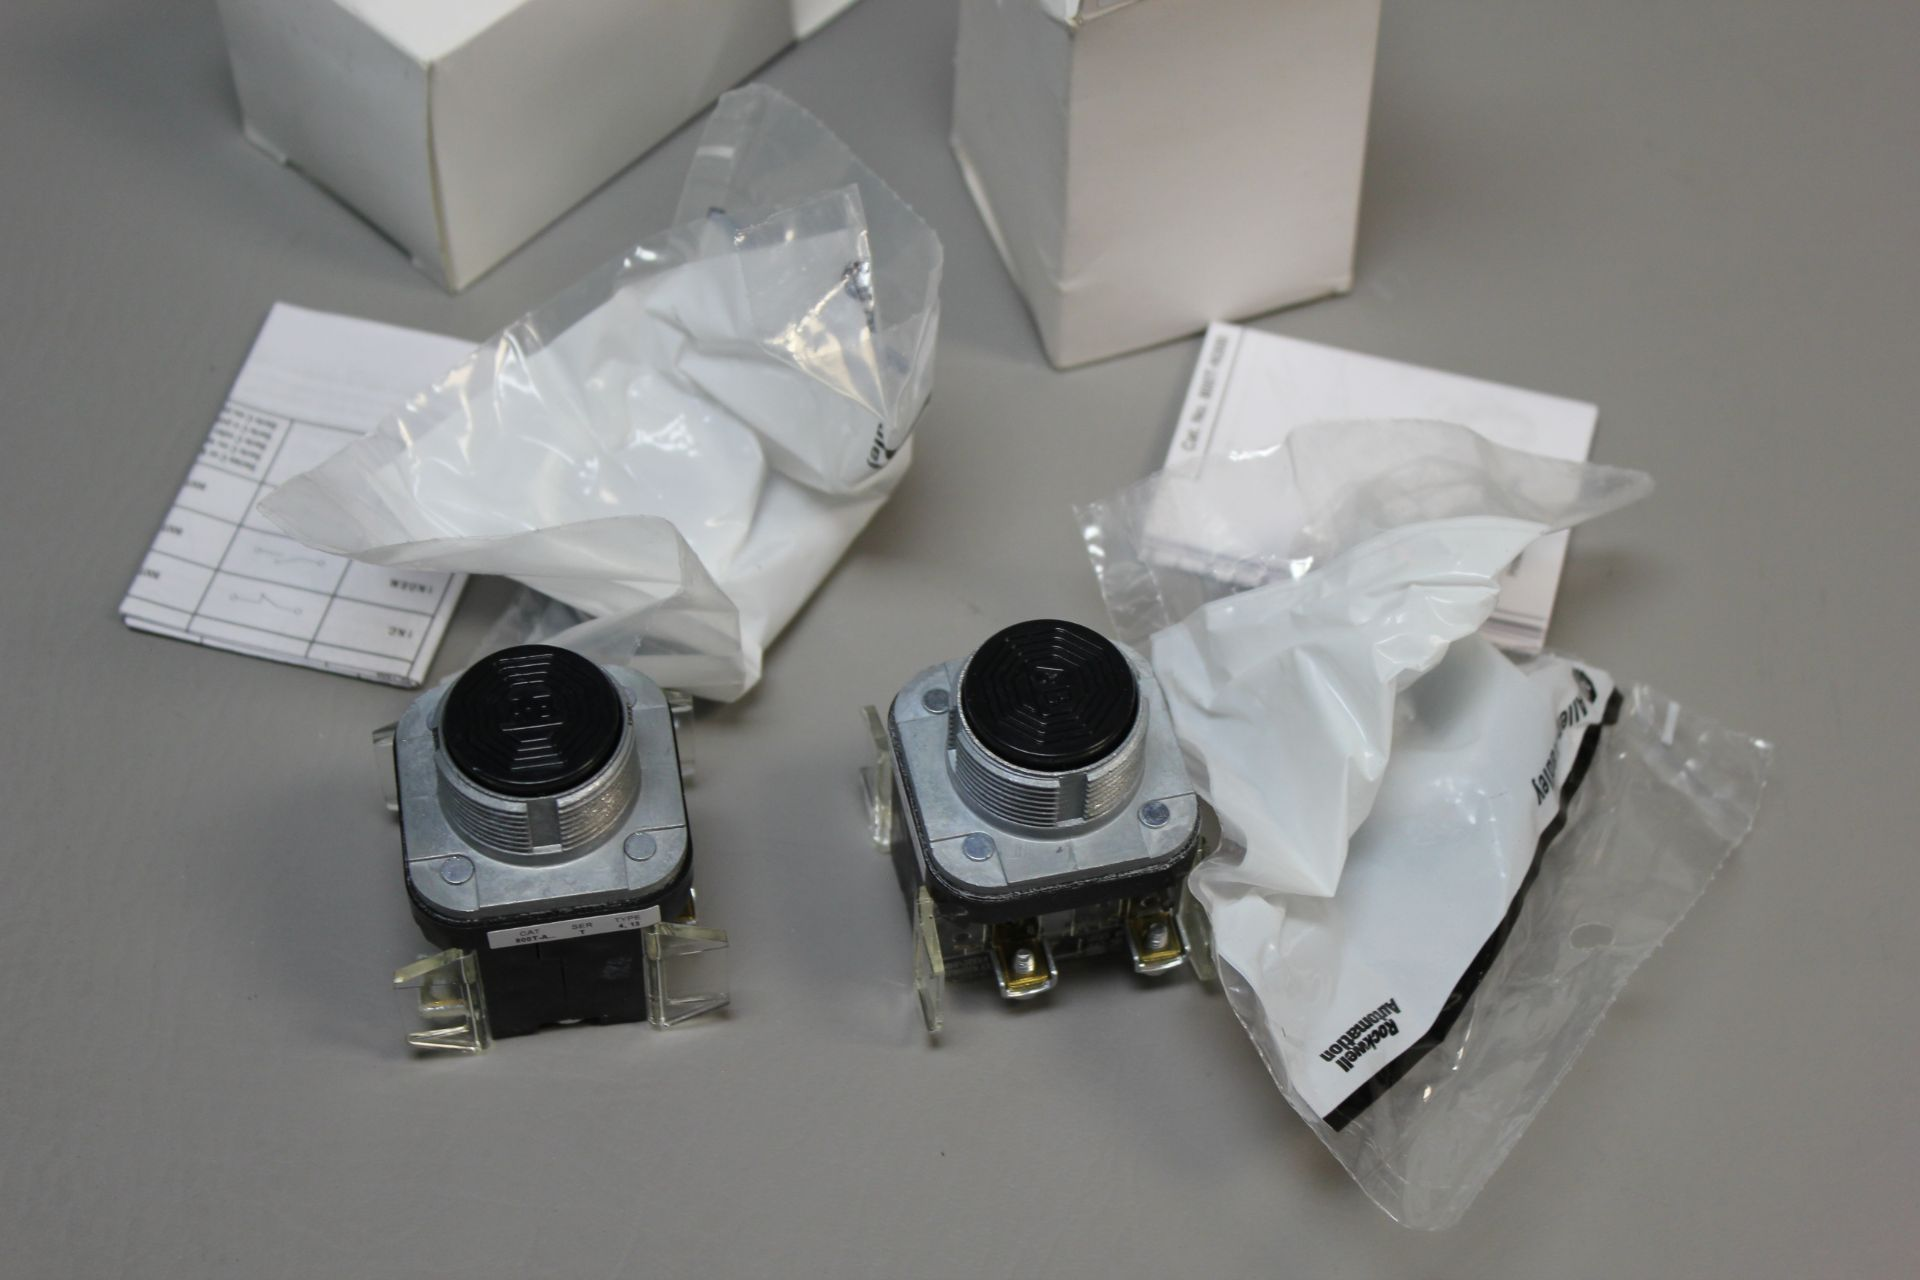 LOT OF NEW ALLEN BRADLEY PUSH BUTTONS - Image 2 of 2